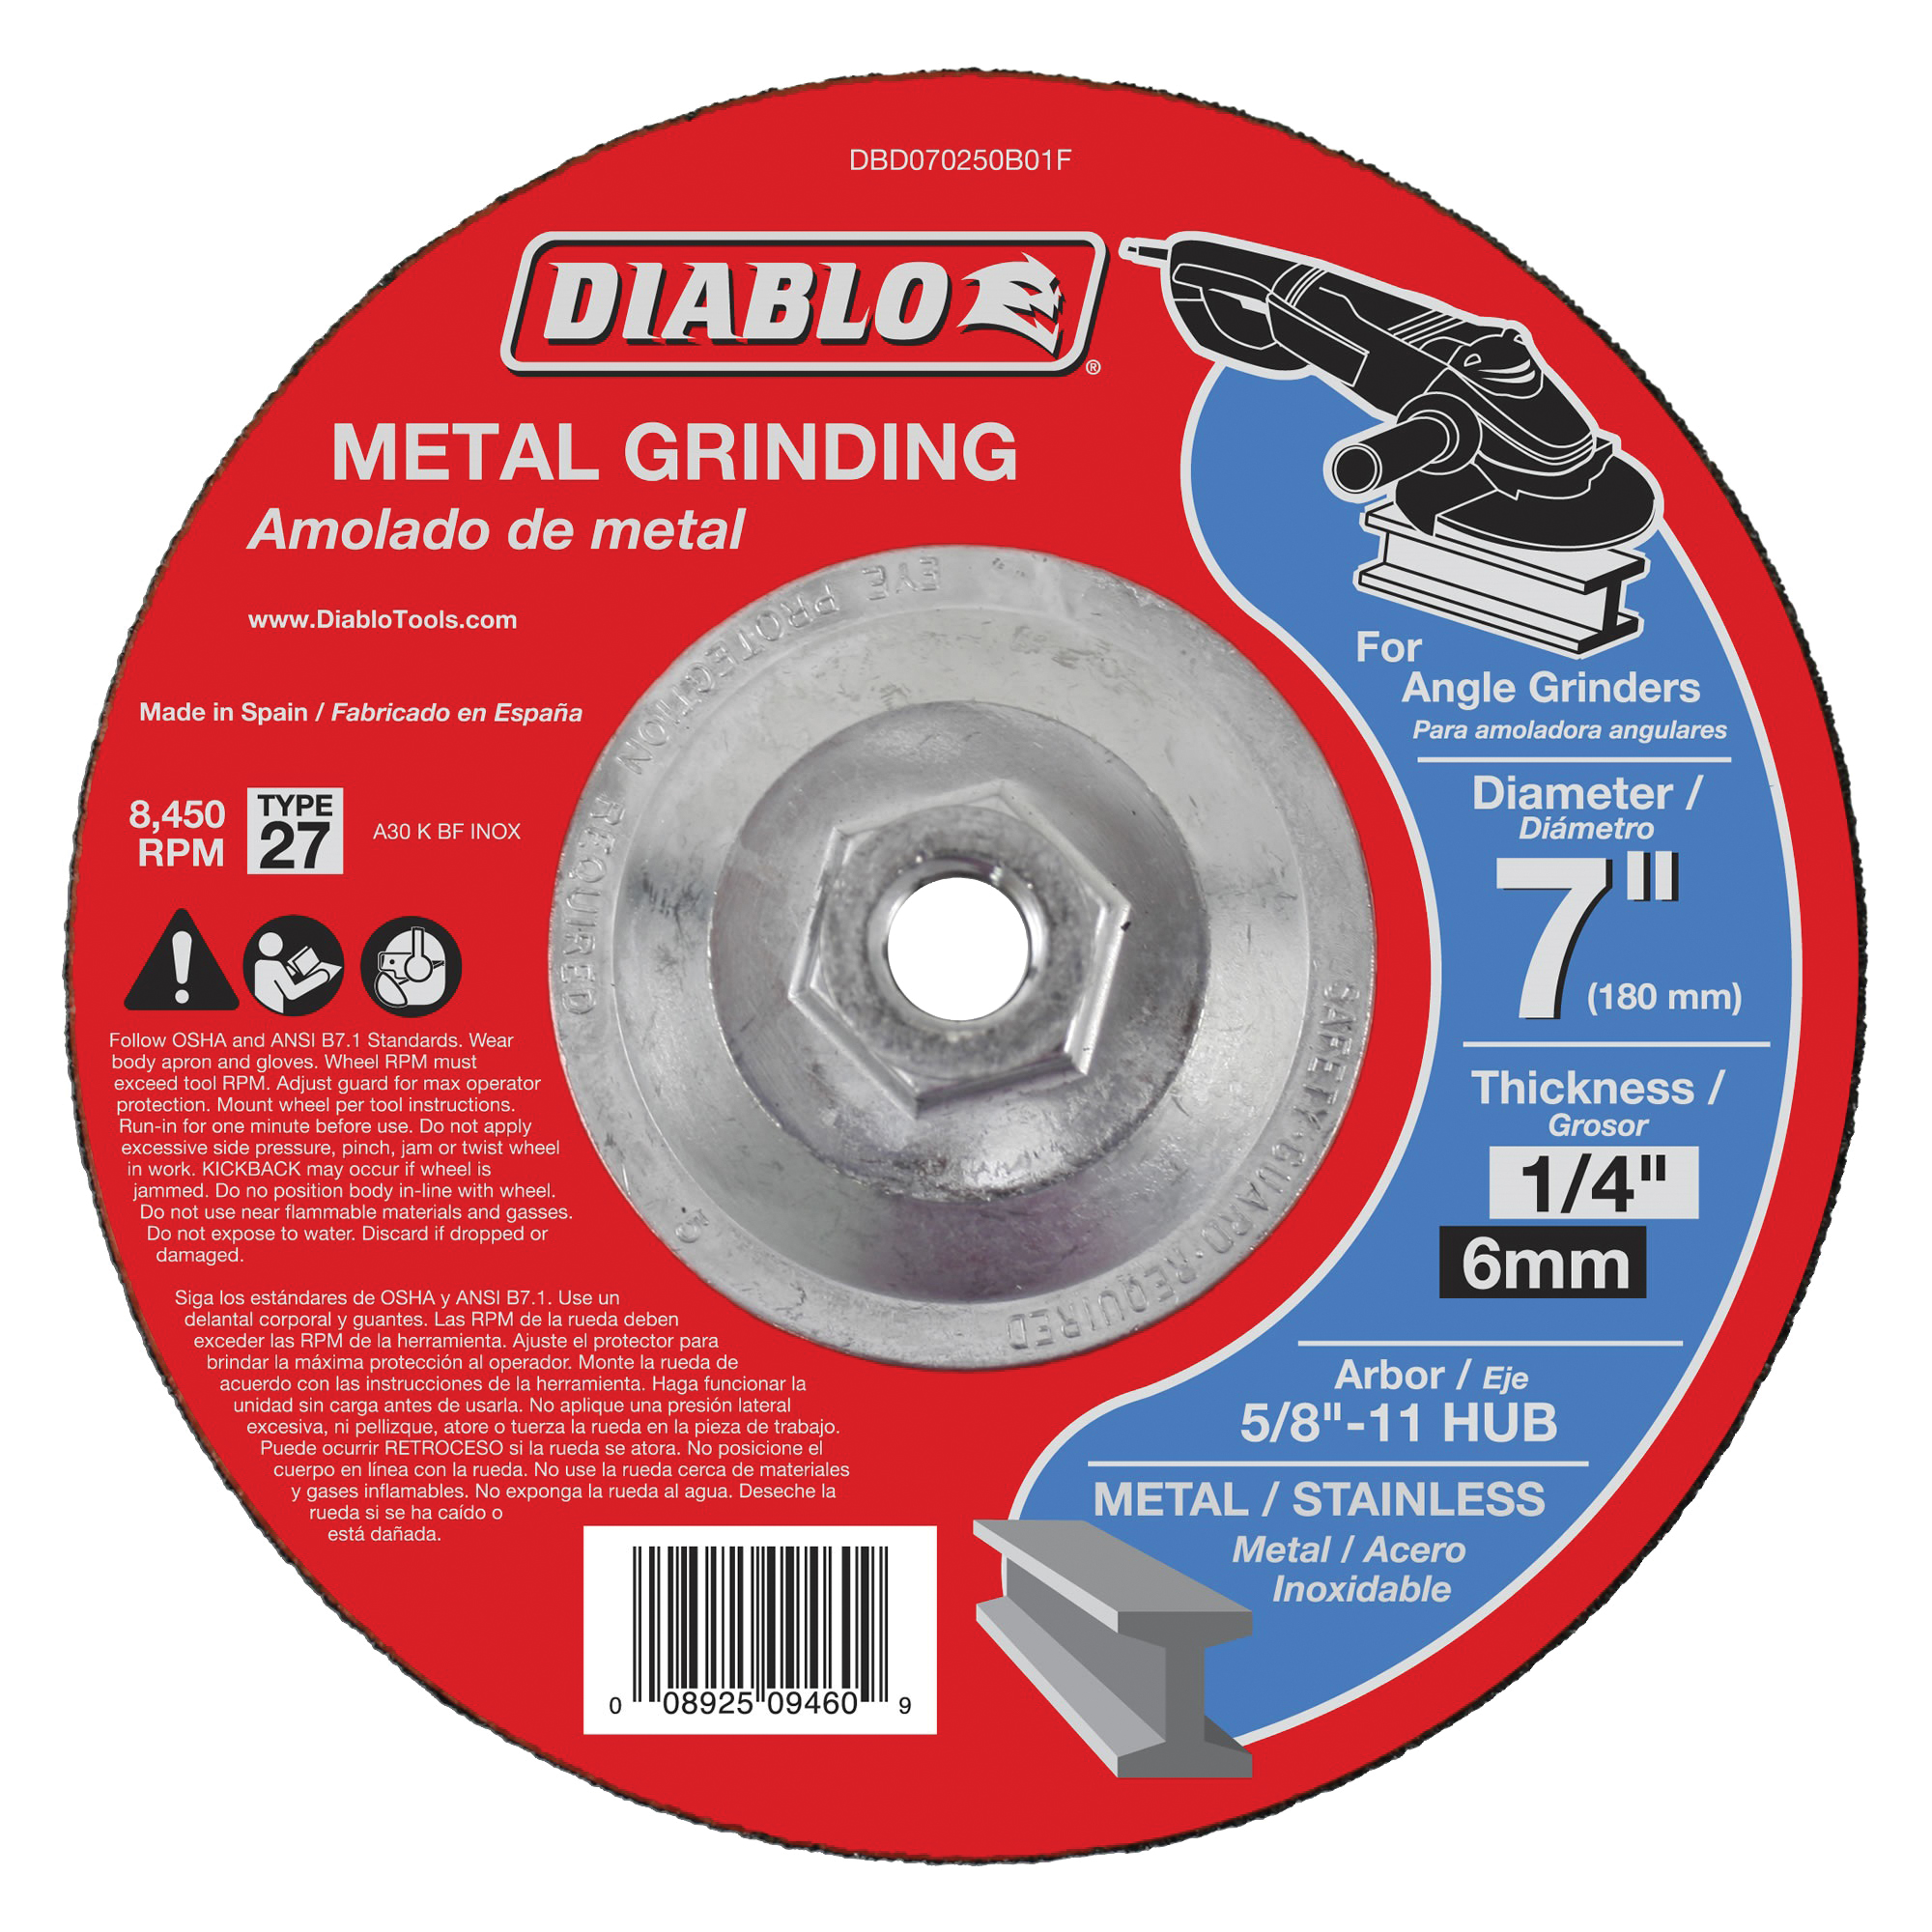 Picture of Diablo DBD070250B01F Grinding Wheel, 7 in Dia, 1/4 in Thick, 5/8-11 in Arbor, Aluminum Oxide Abrasive